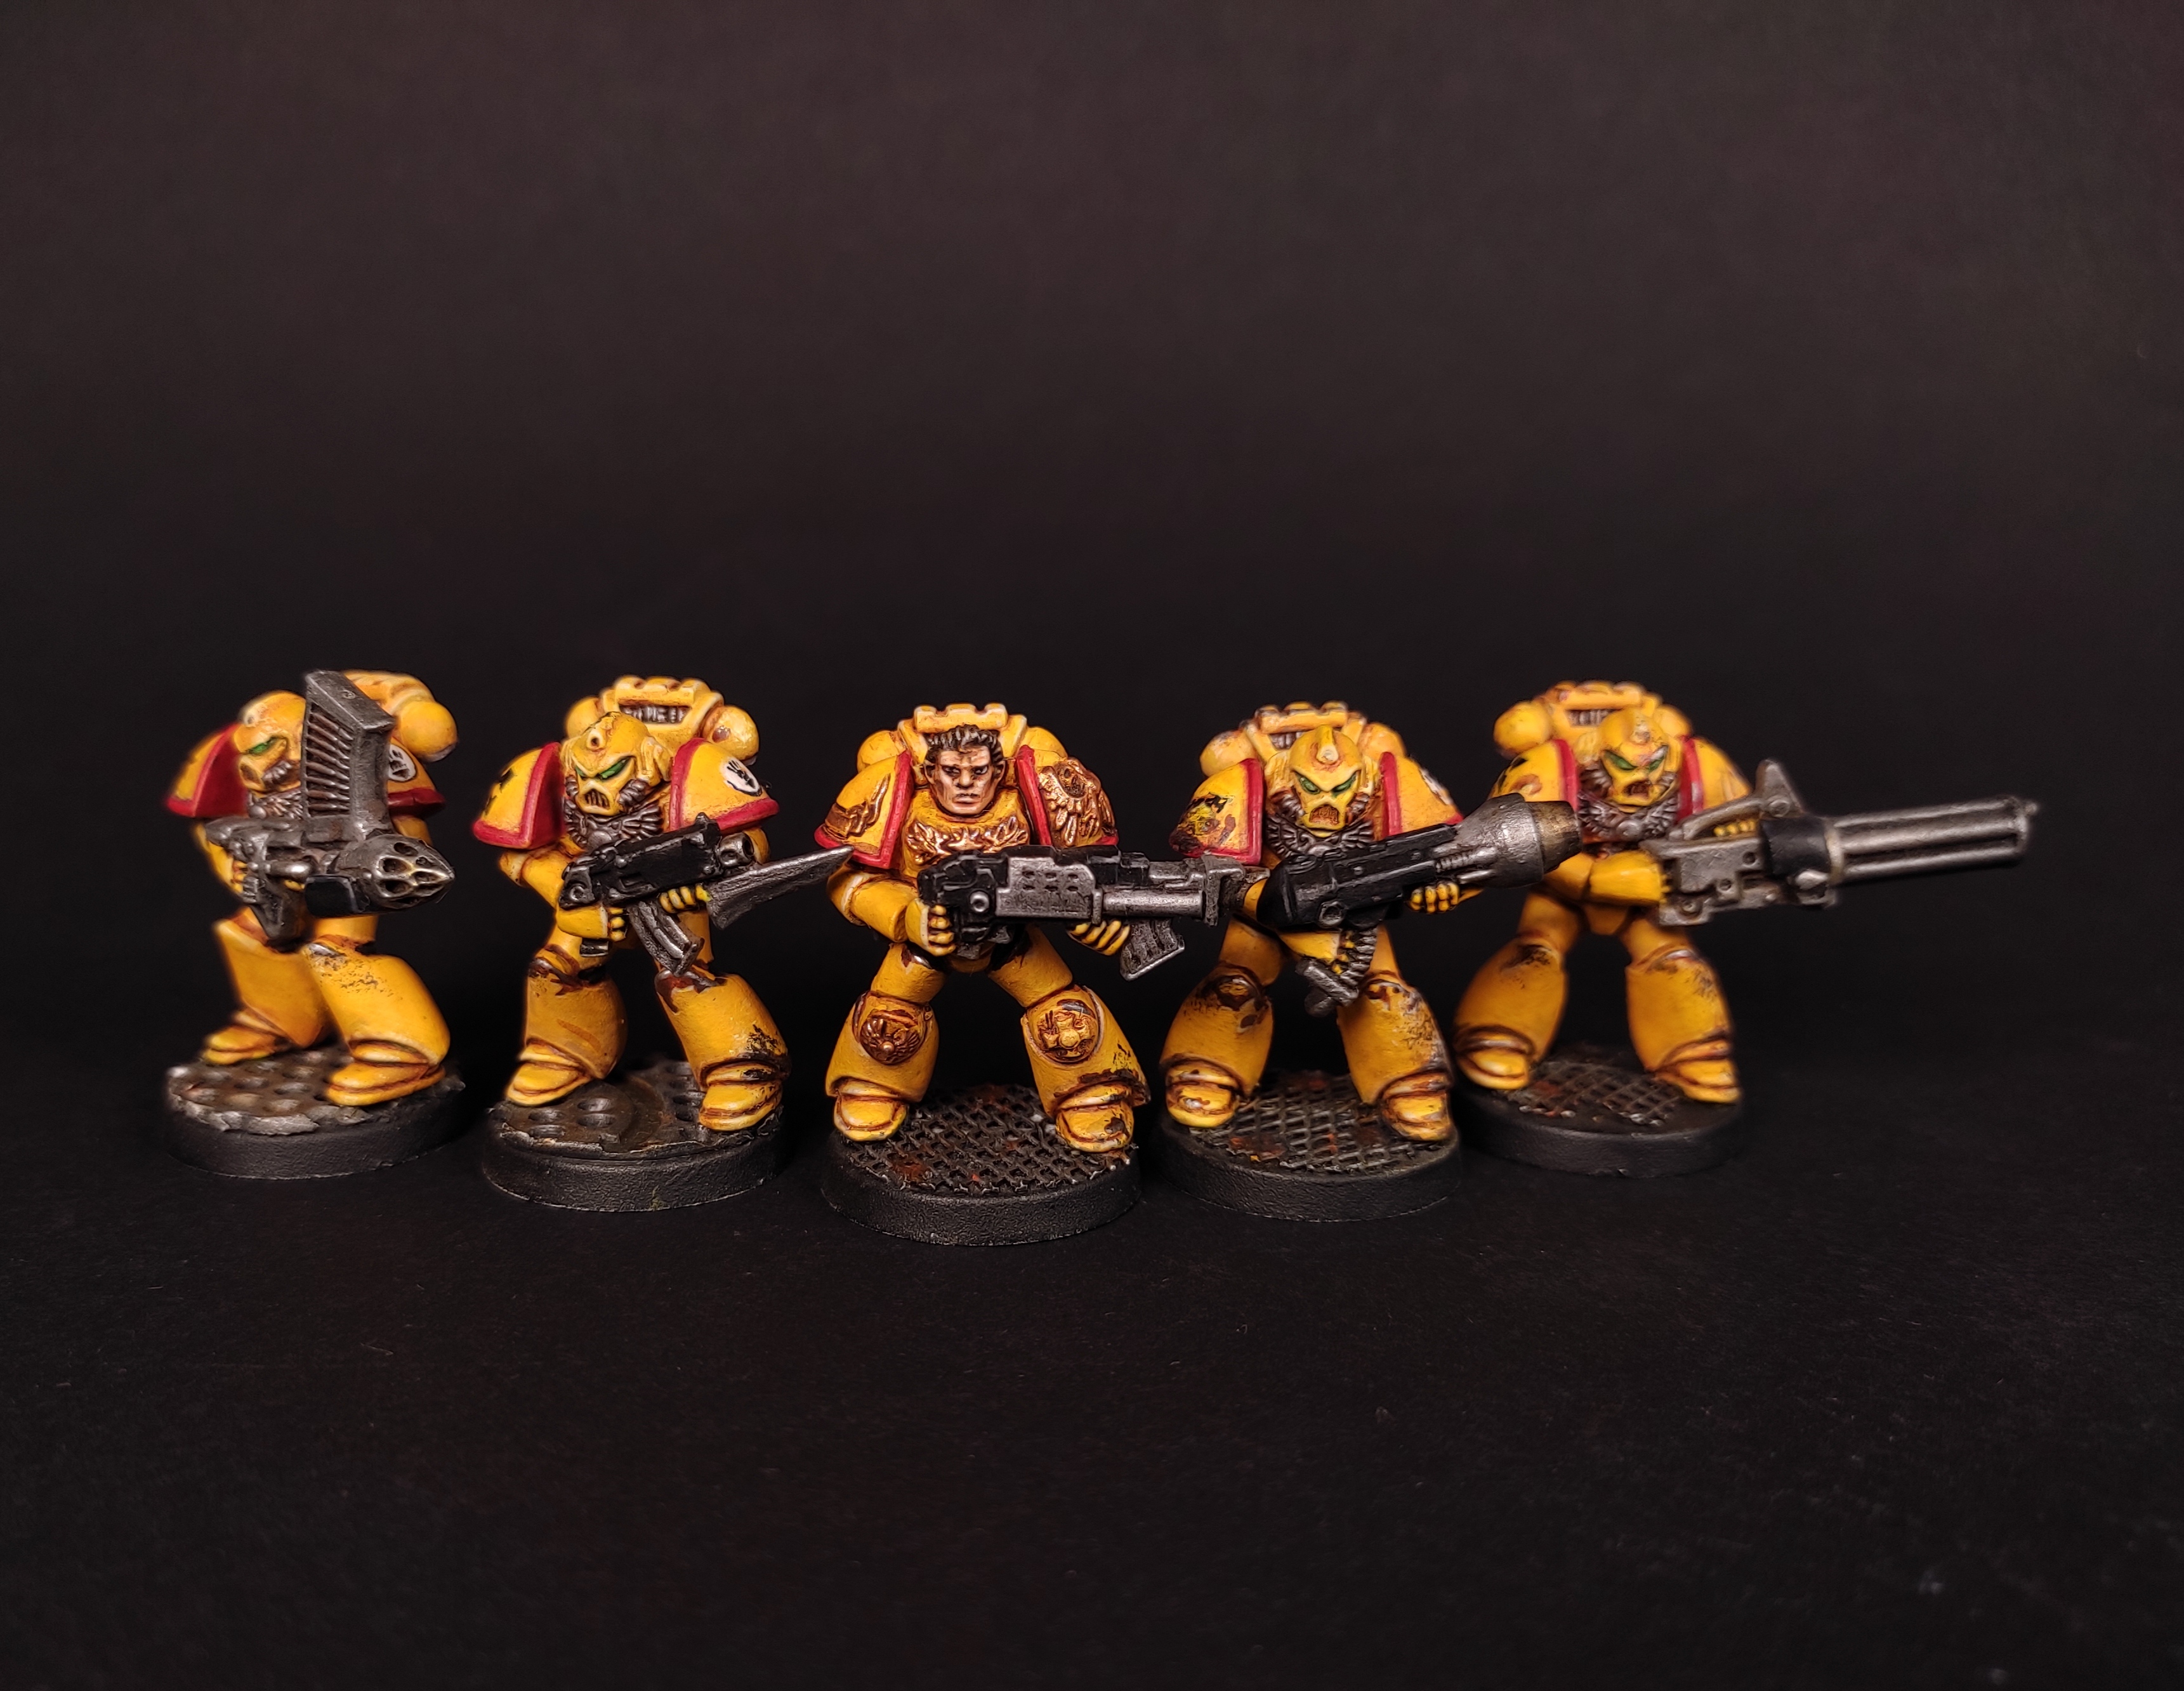 imperial fist space marines. Space crusade